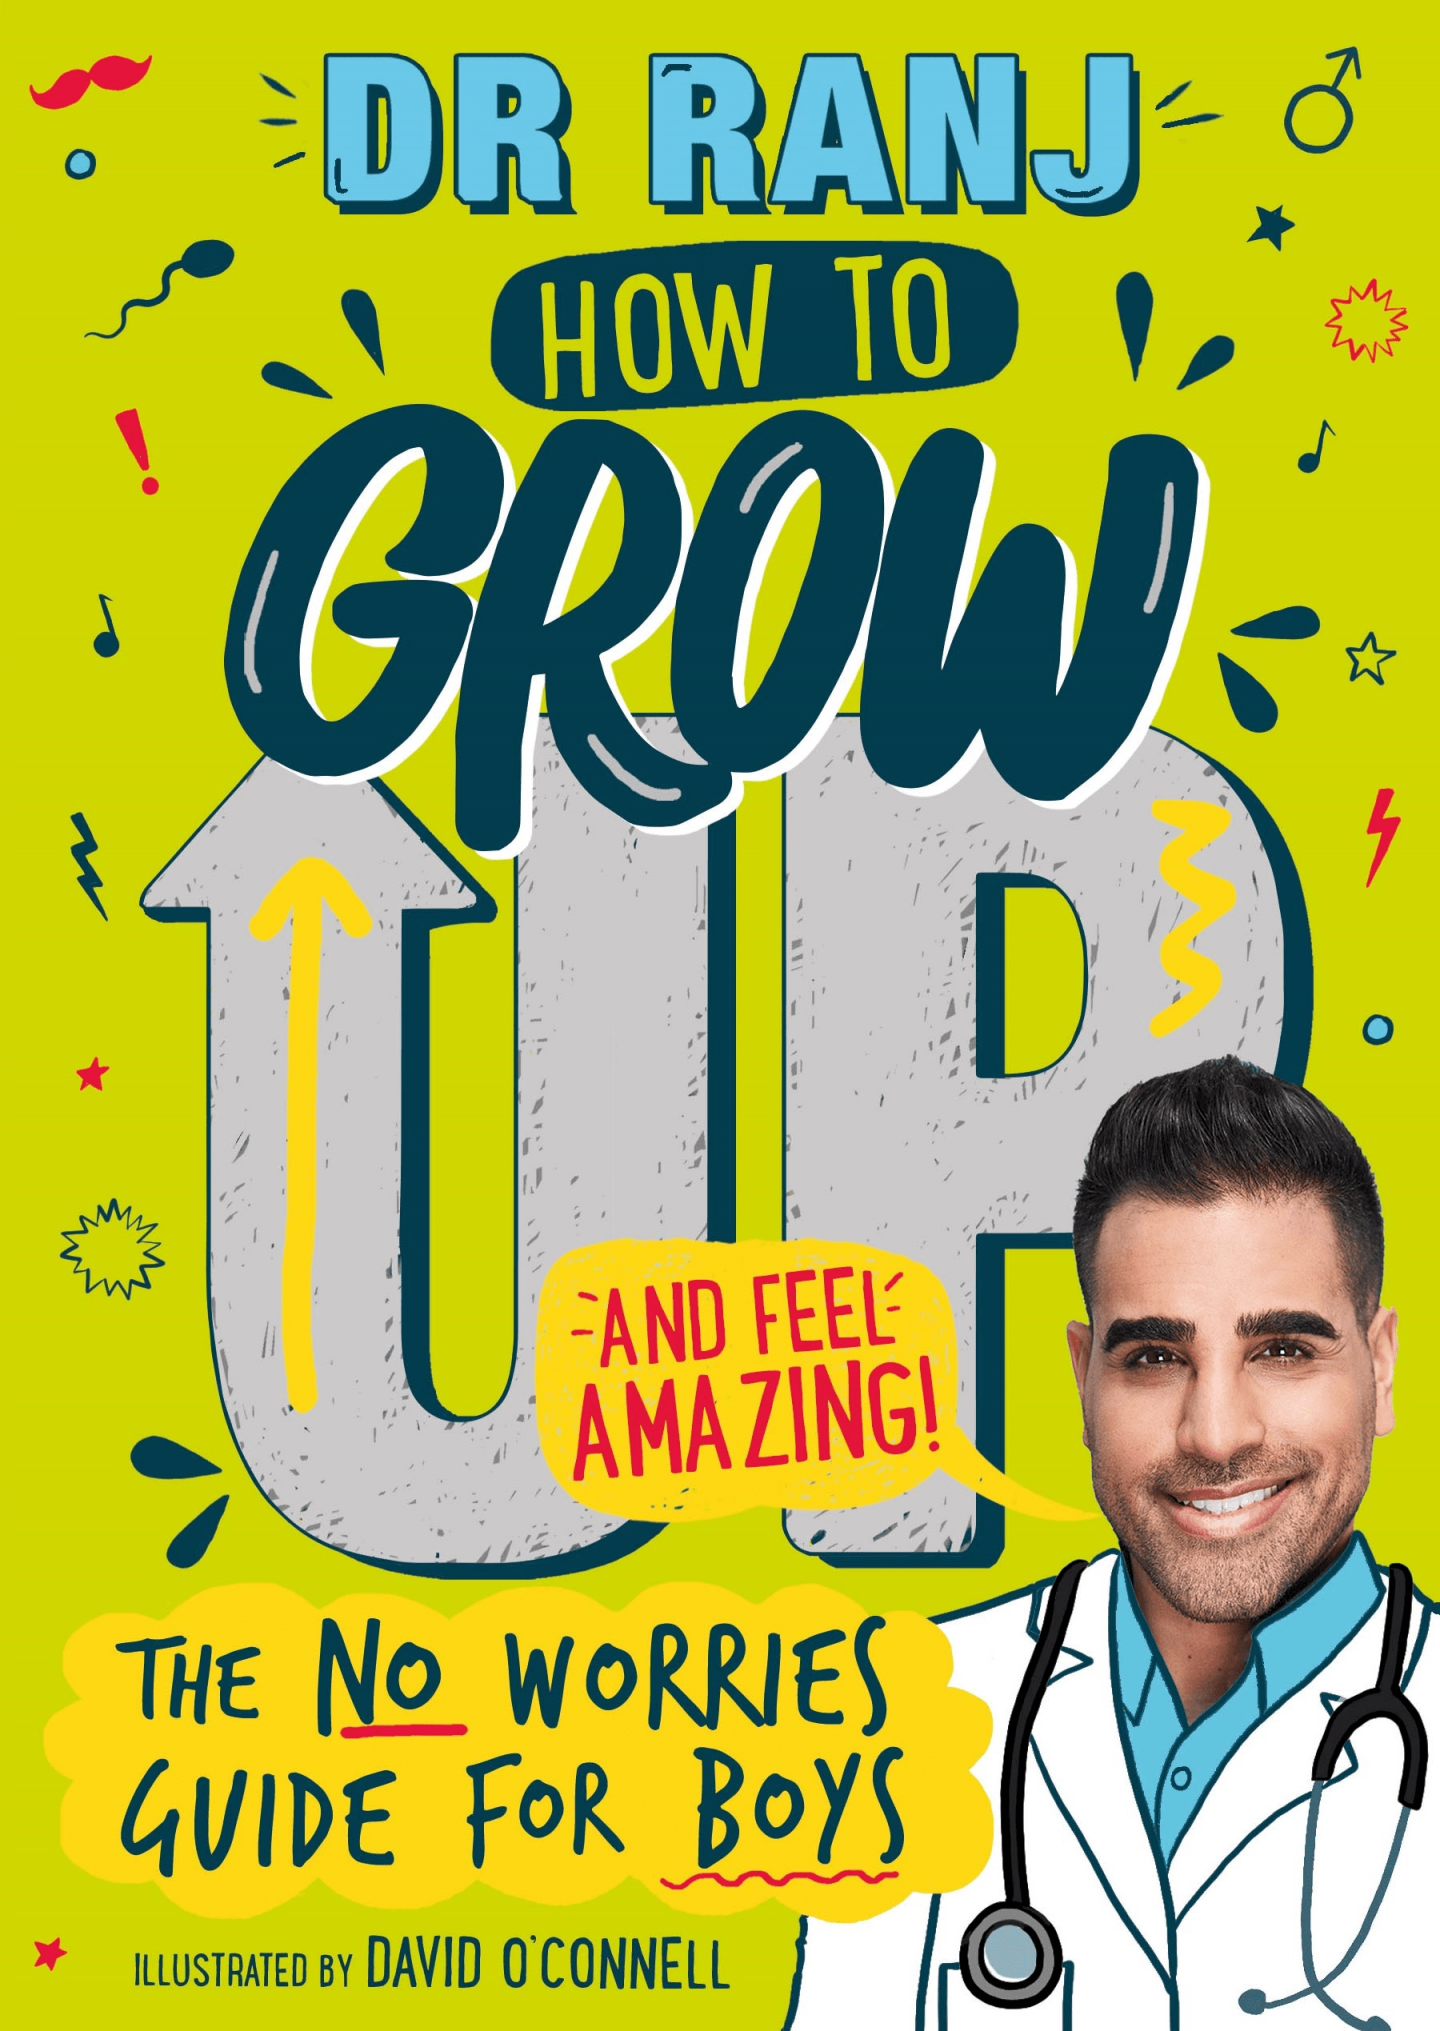 The cover of Dr Ranj book How to Grow Up and Feel Amazing